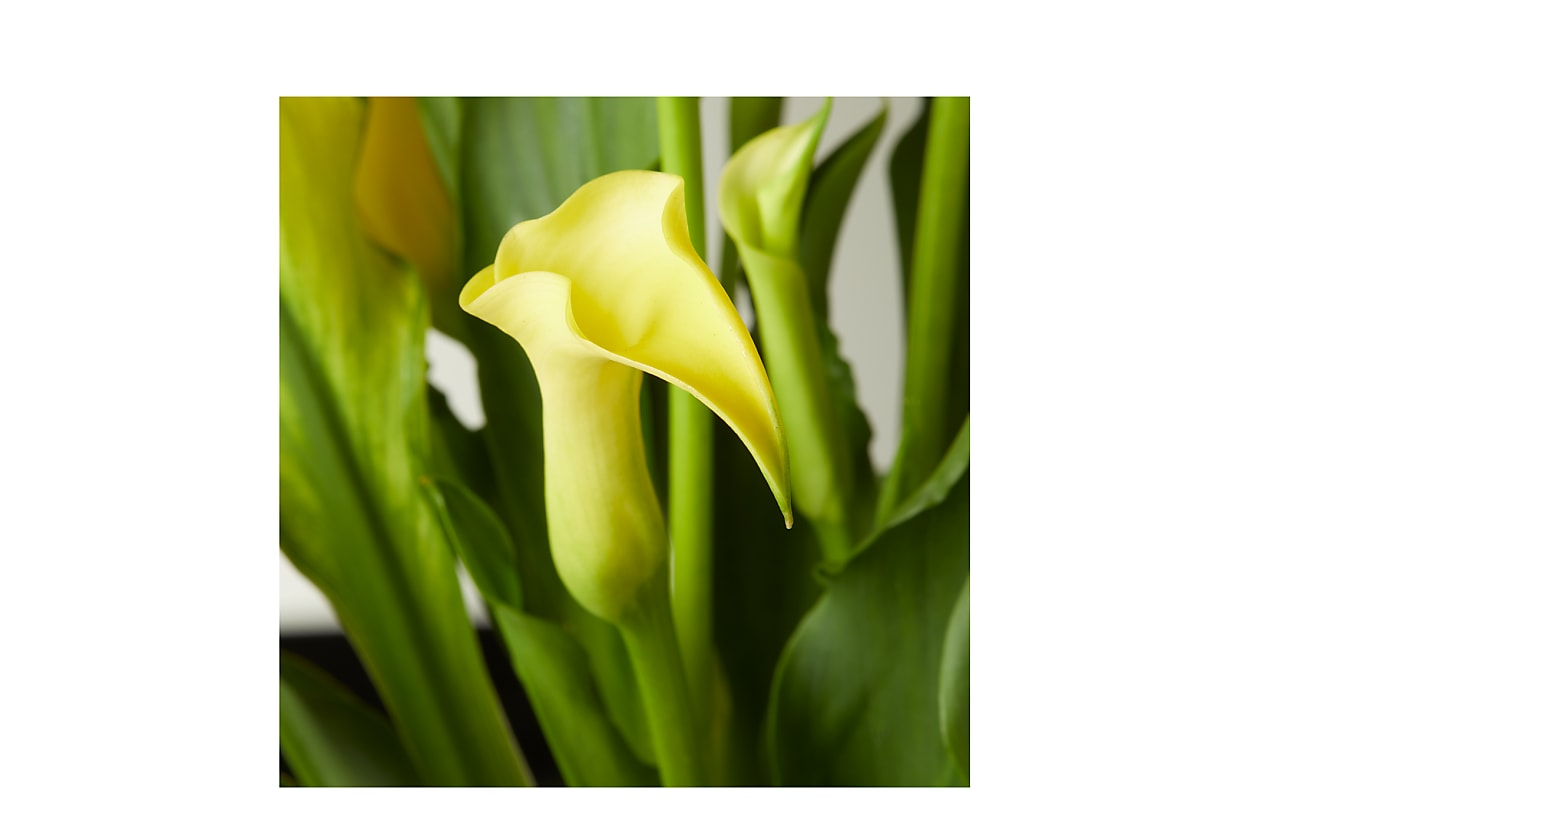 Yellow Calla Lily Plant - Image 2 Of 2